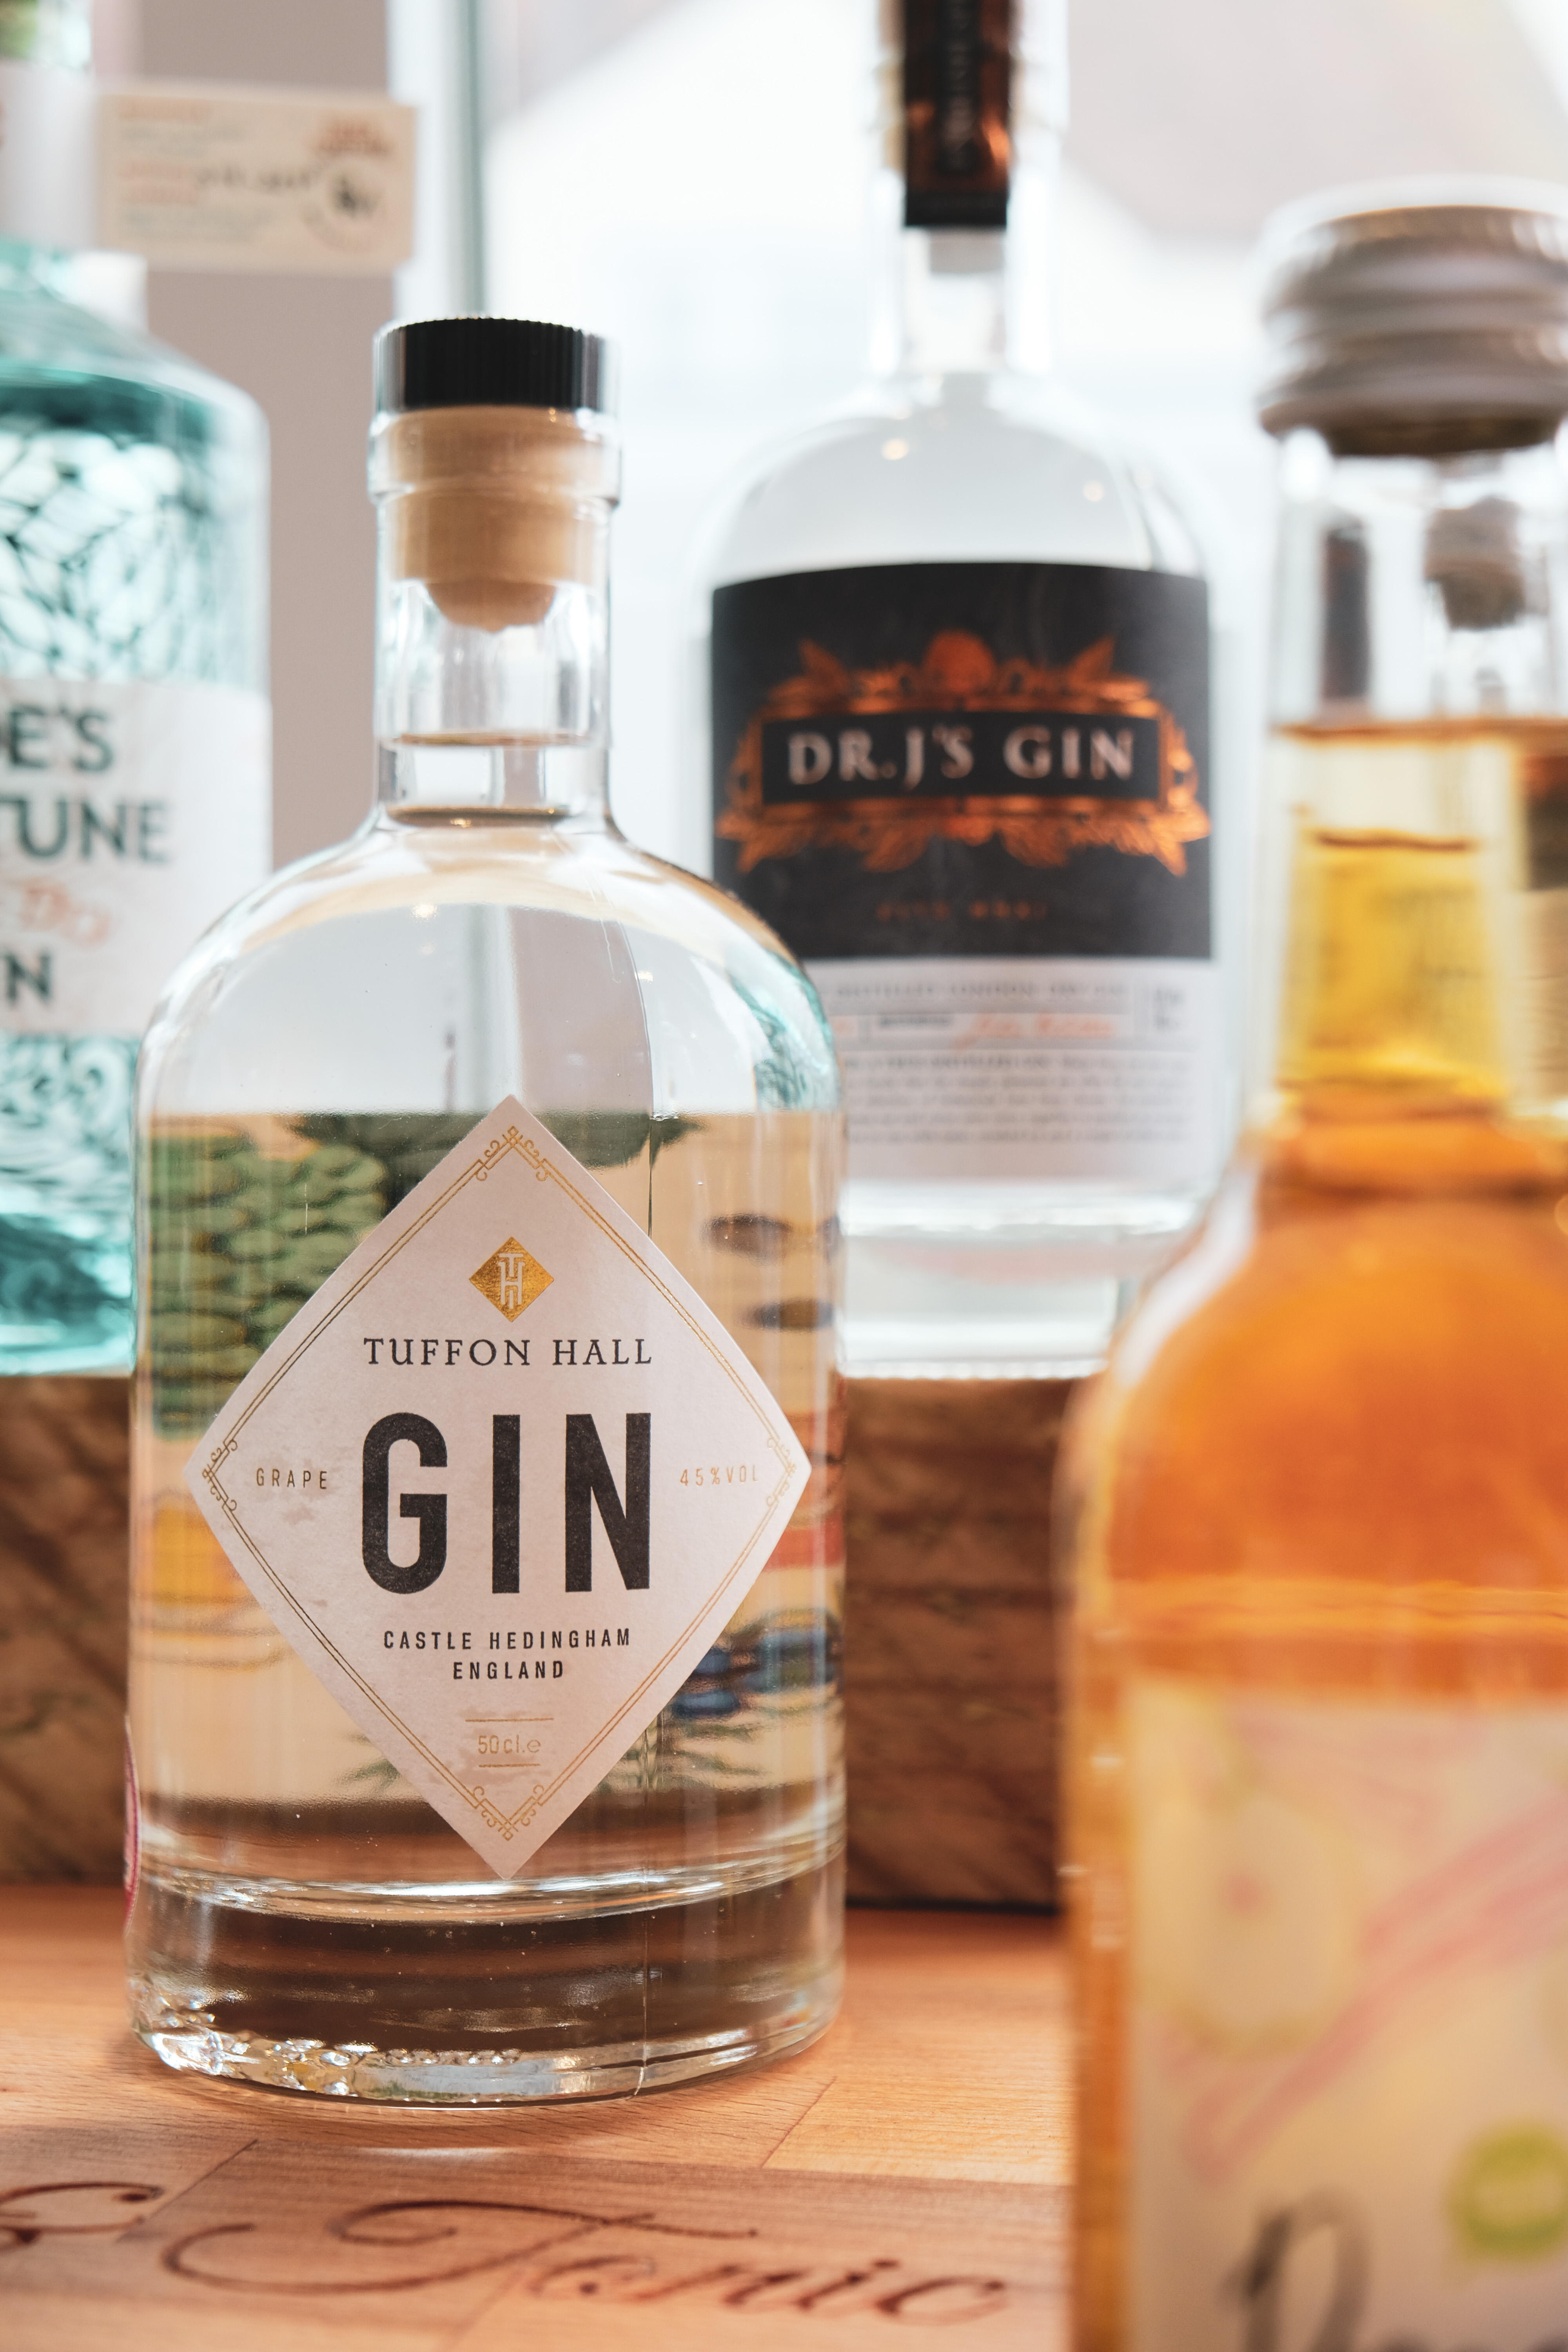 Tuffon Hall gin available at the Essex Produce Co. in Kelvedon, Essex.